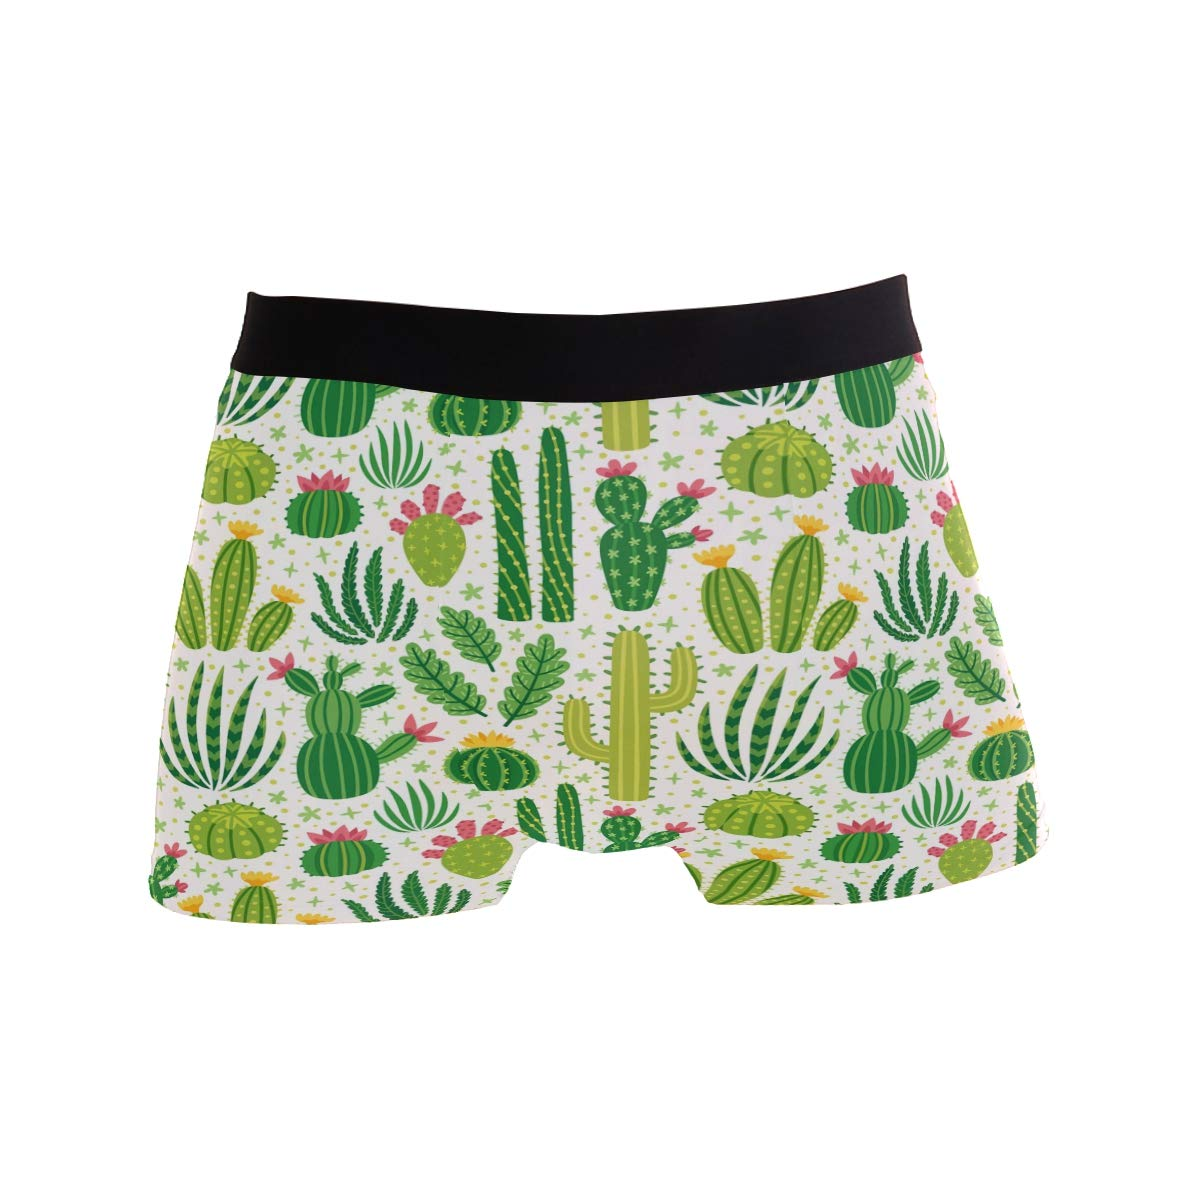 Wamika Cactus Men/'s Boxer Briefs Green Plant Underwear Stretchable S-XL